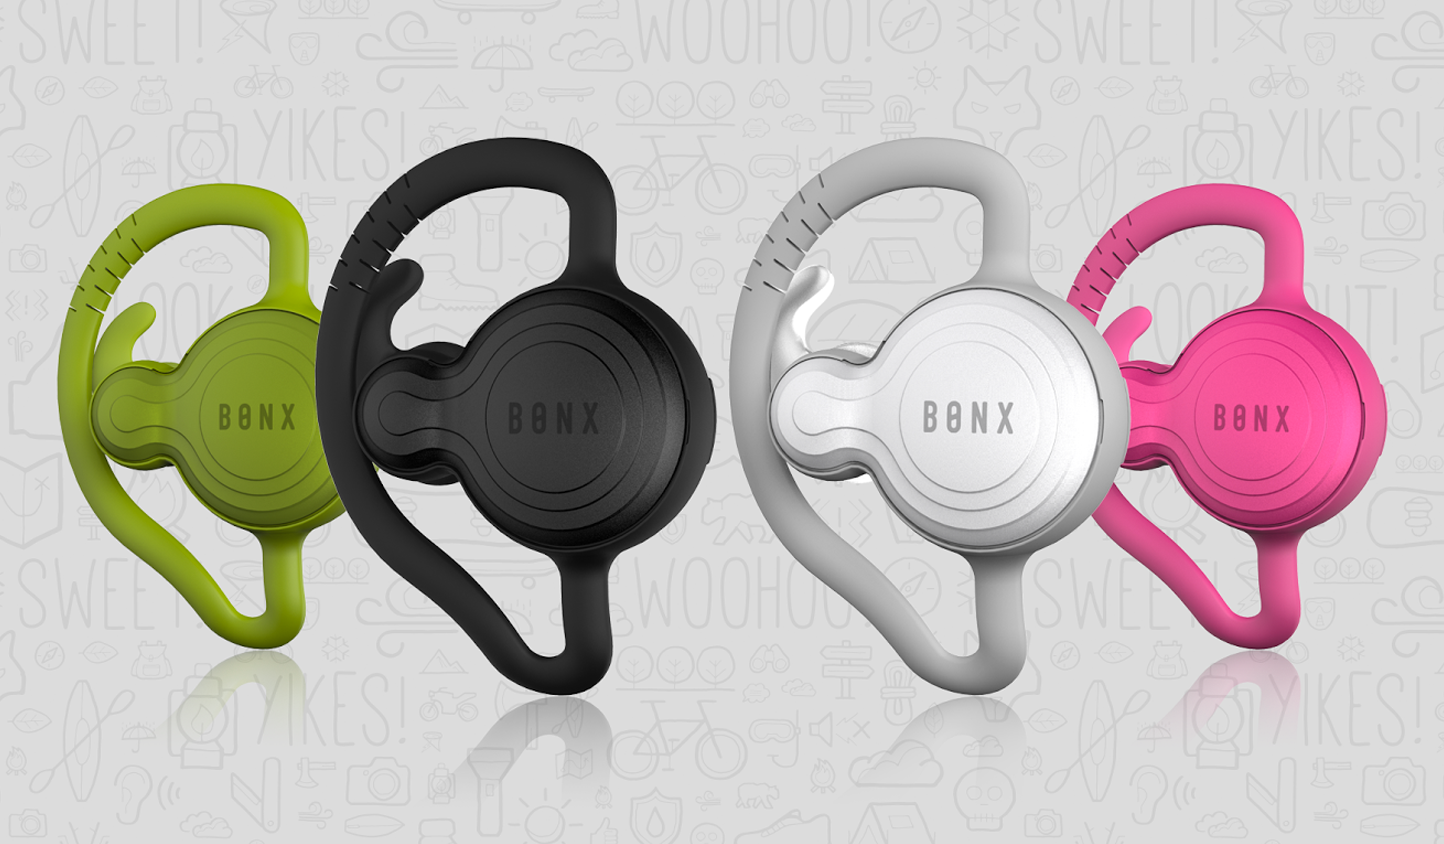 Bonx Grip Bluetooth earpiece